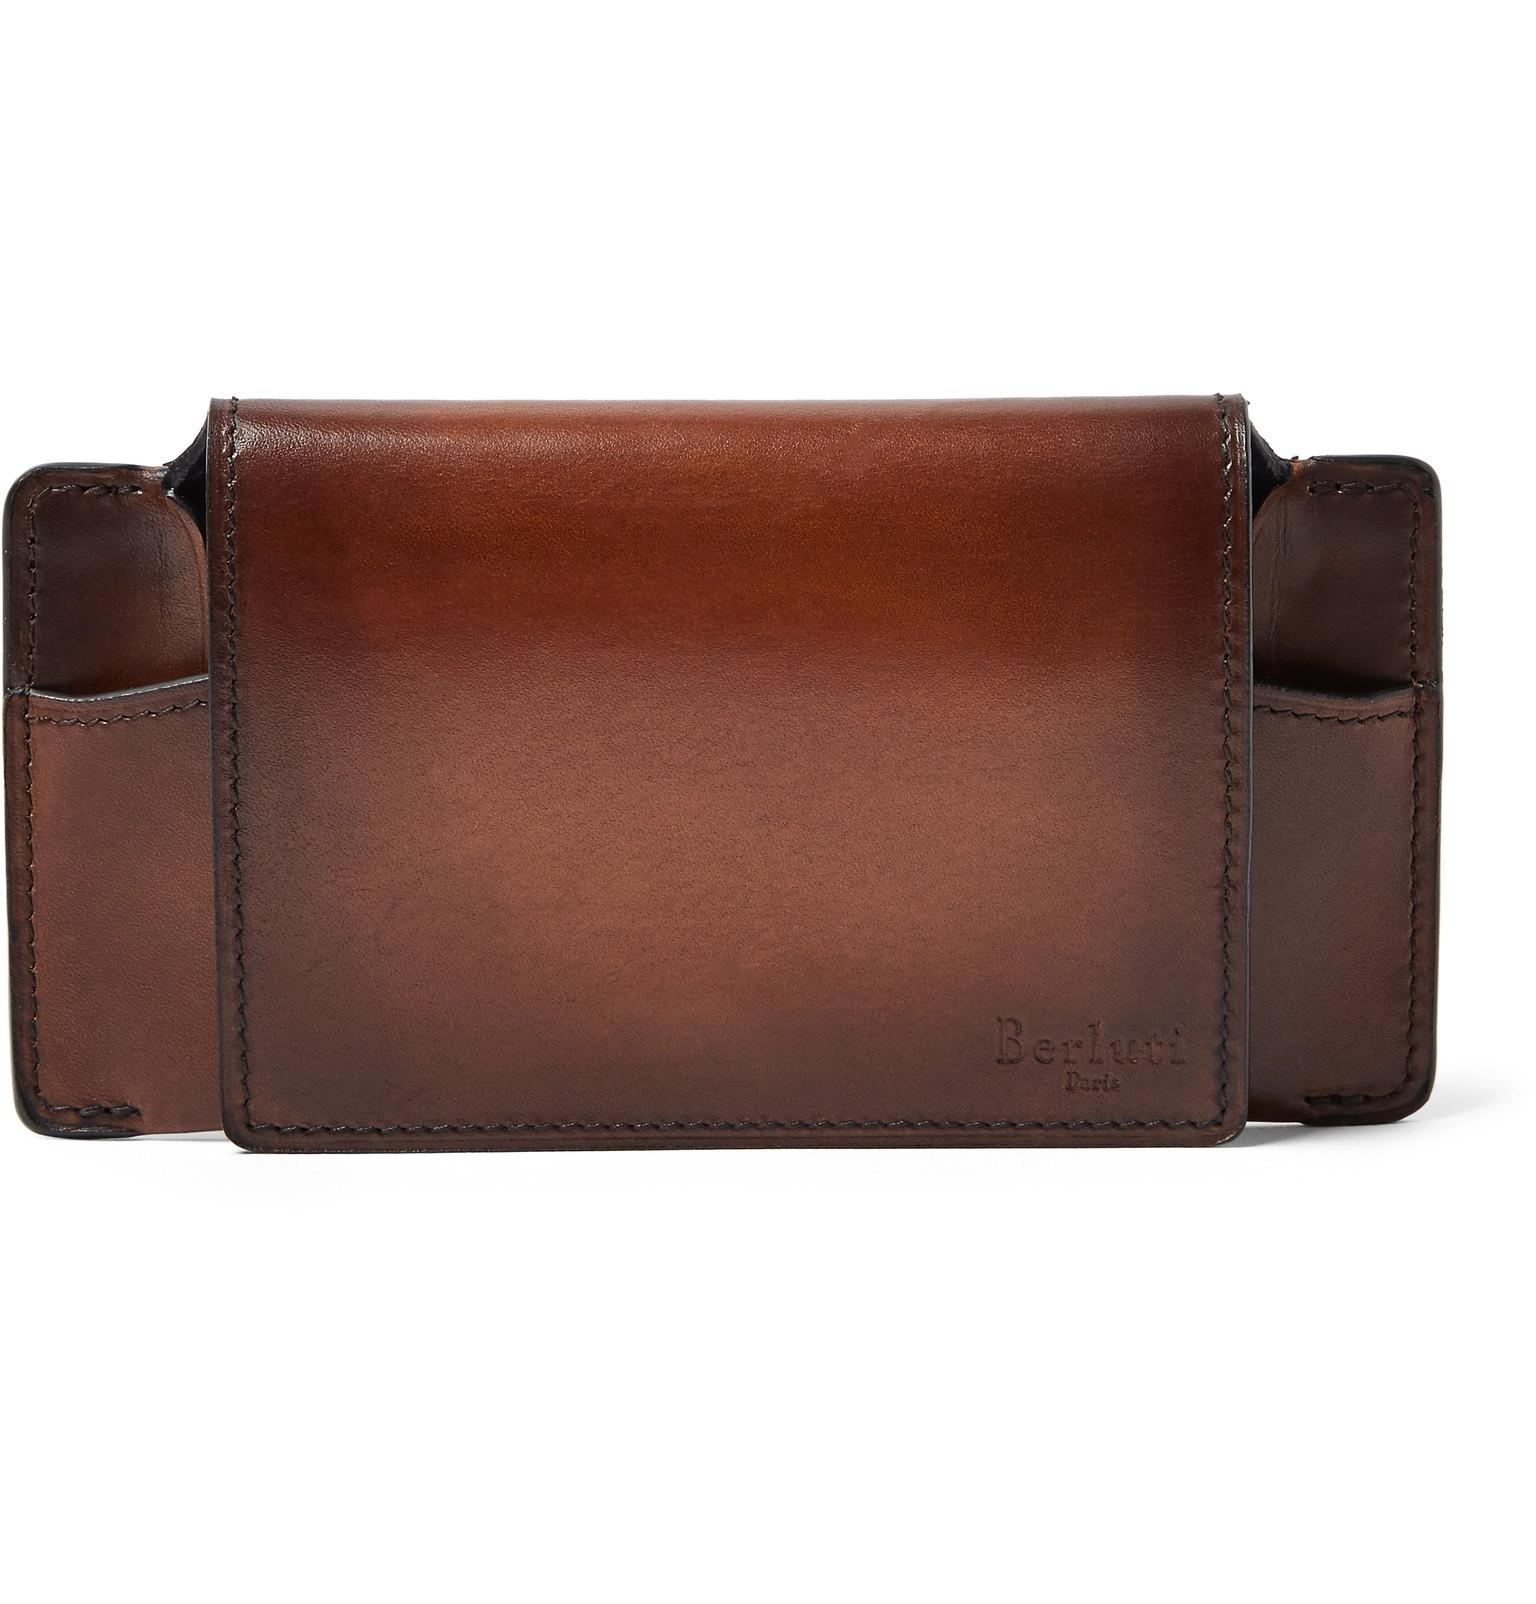 b3c6a830f23 Gucci Brown Leather Glasses Case - Image Of Glasses